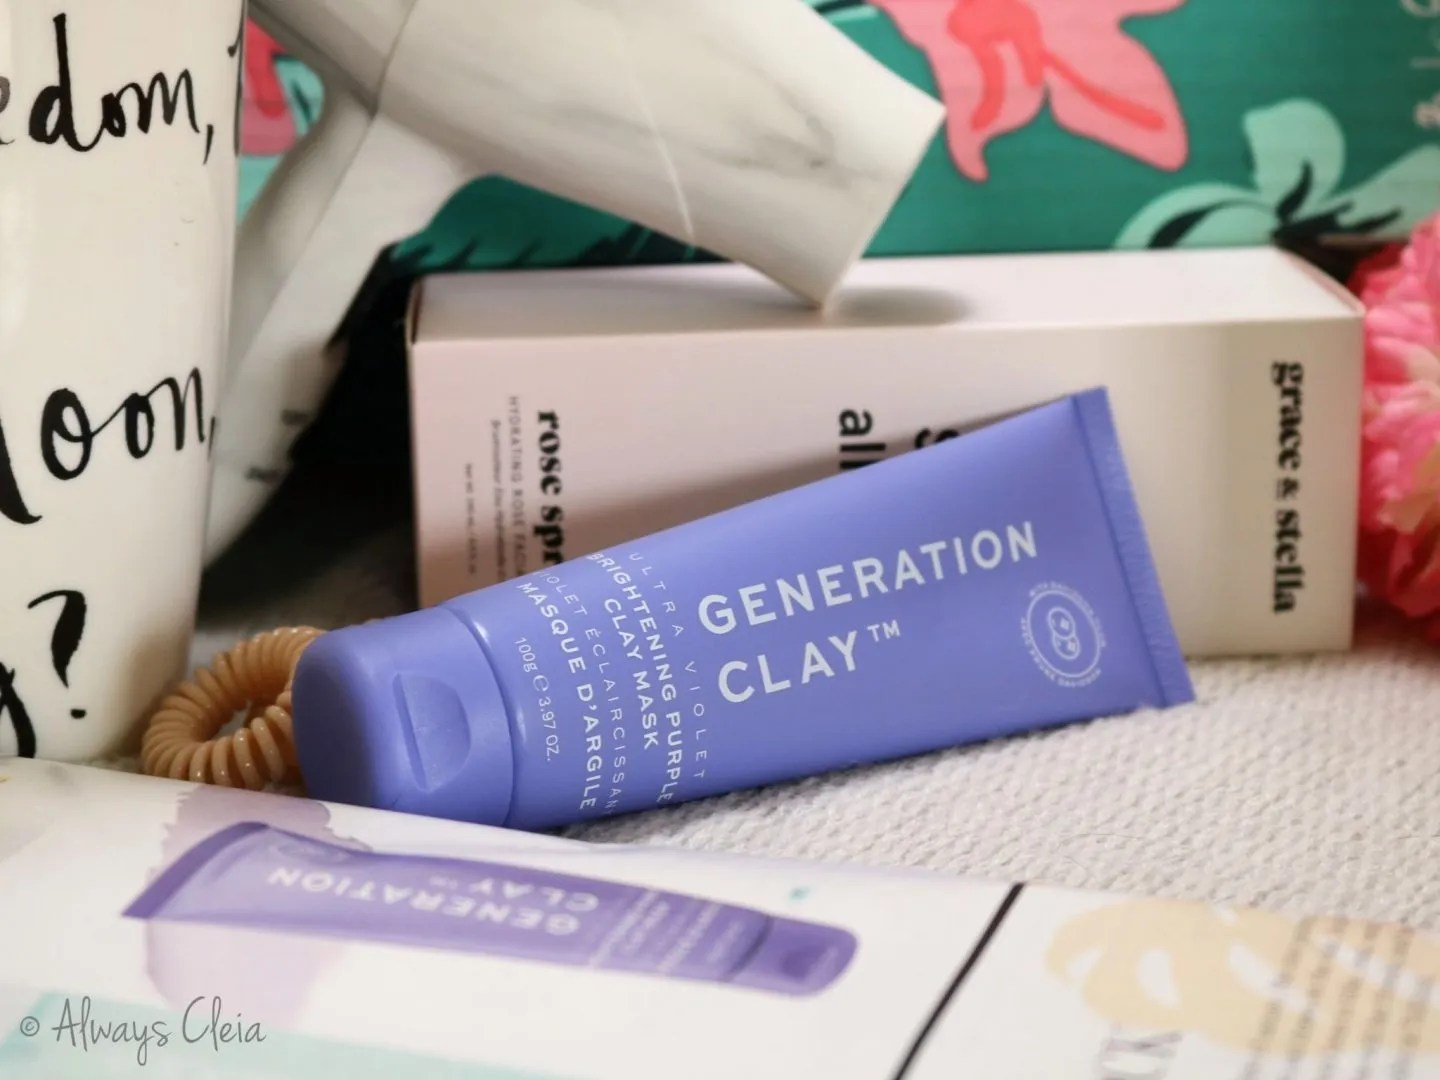 Generation Clay Violet Brightening Face Mask